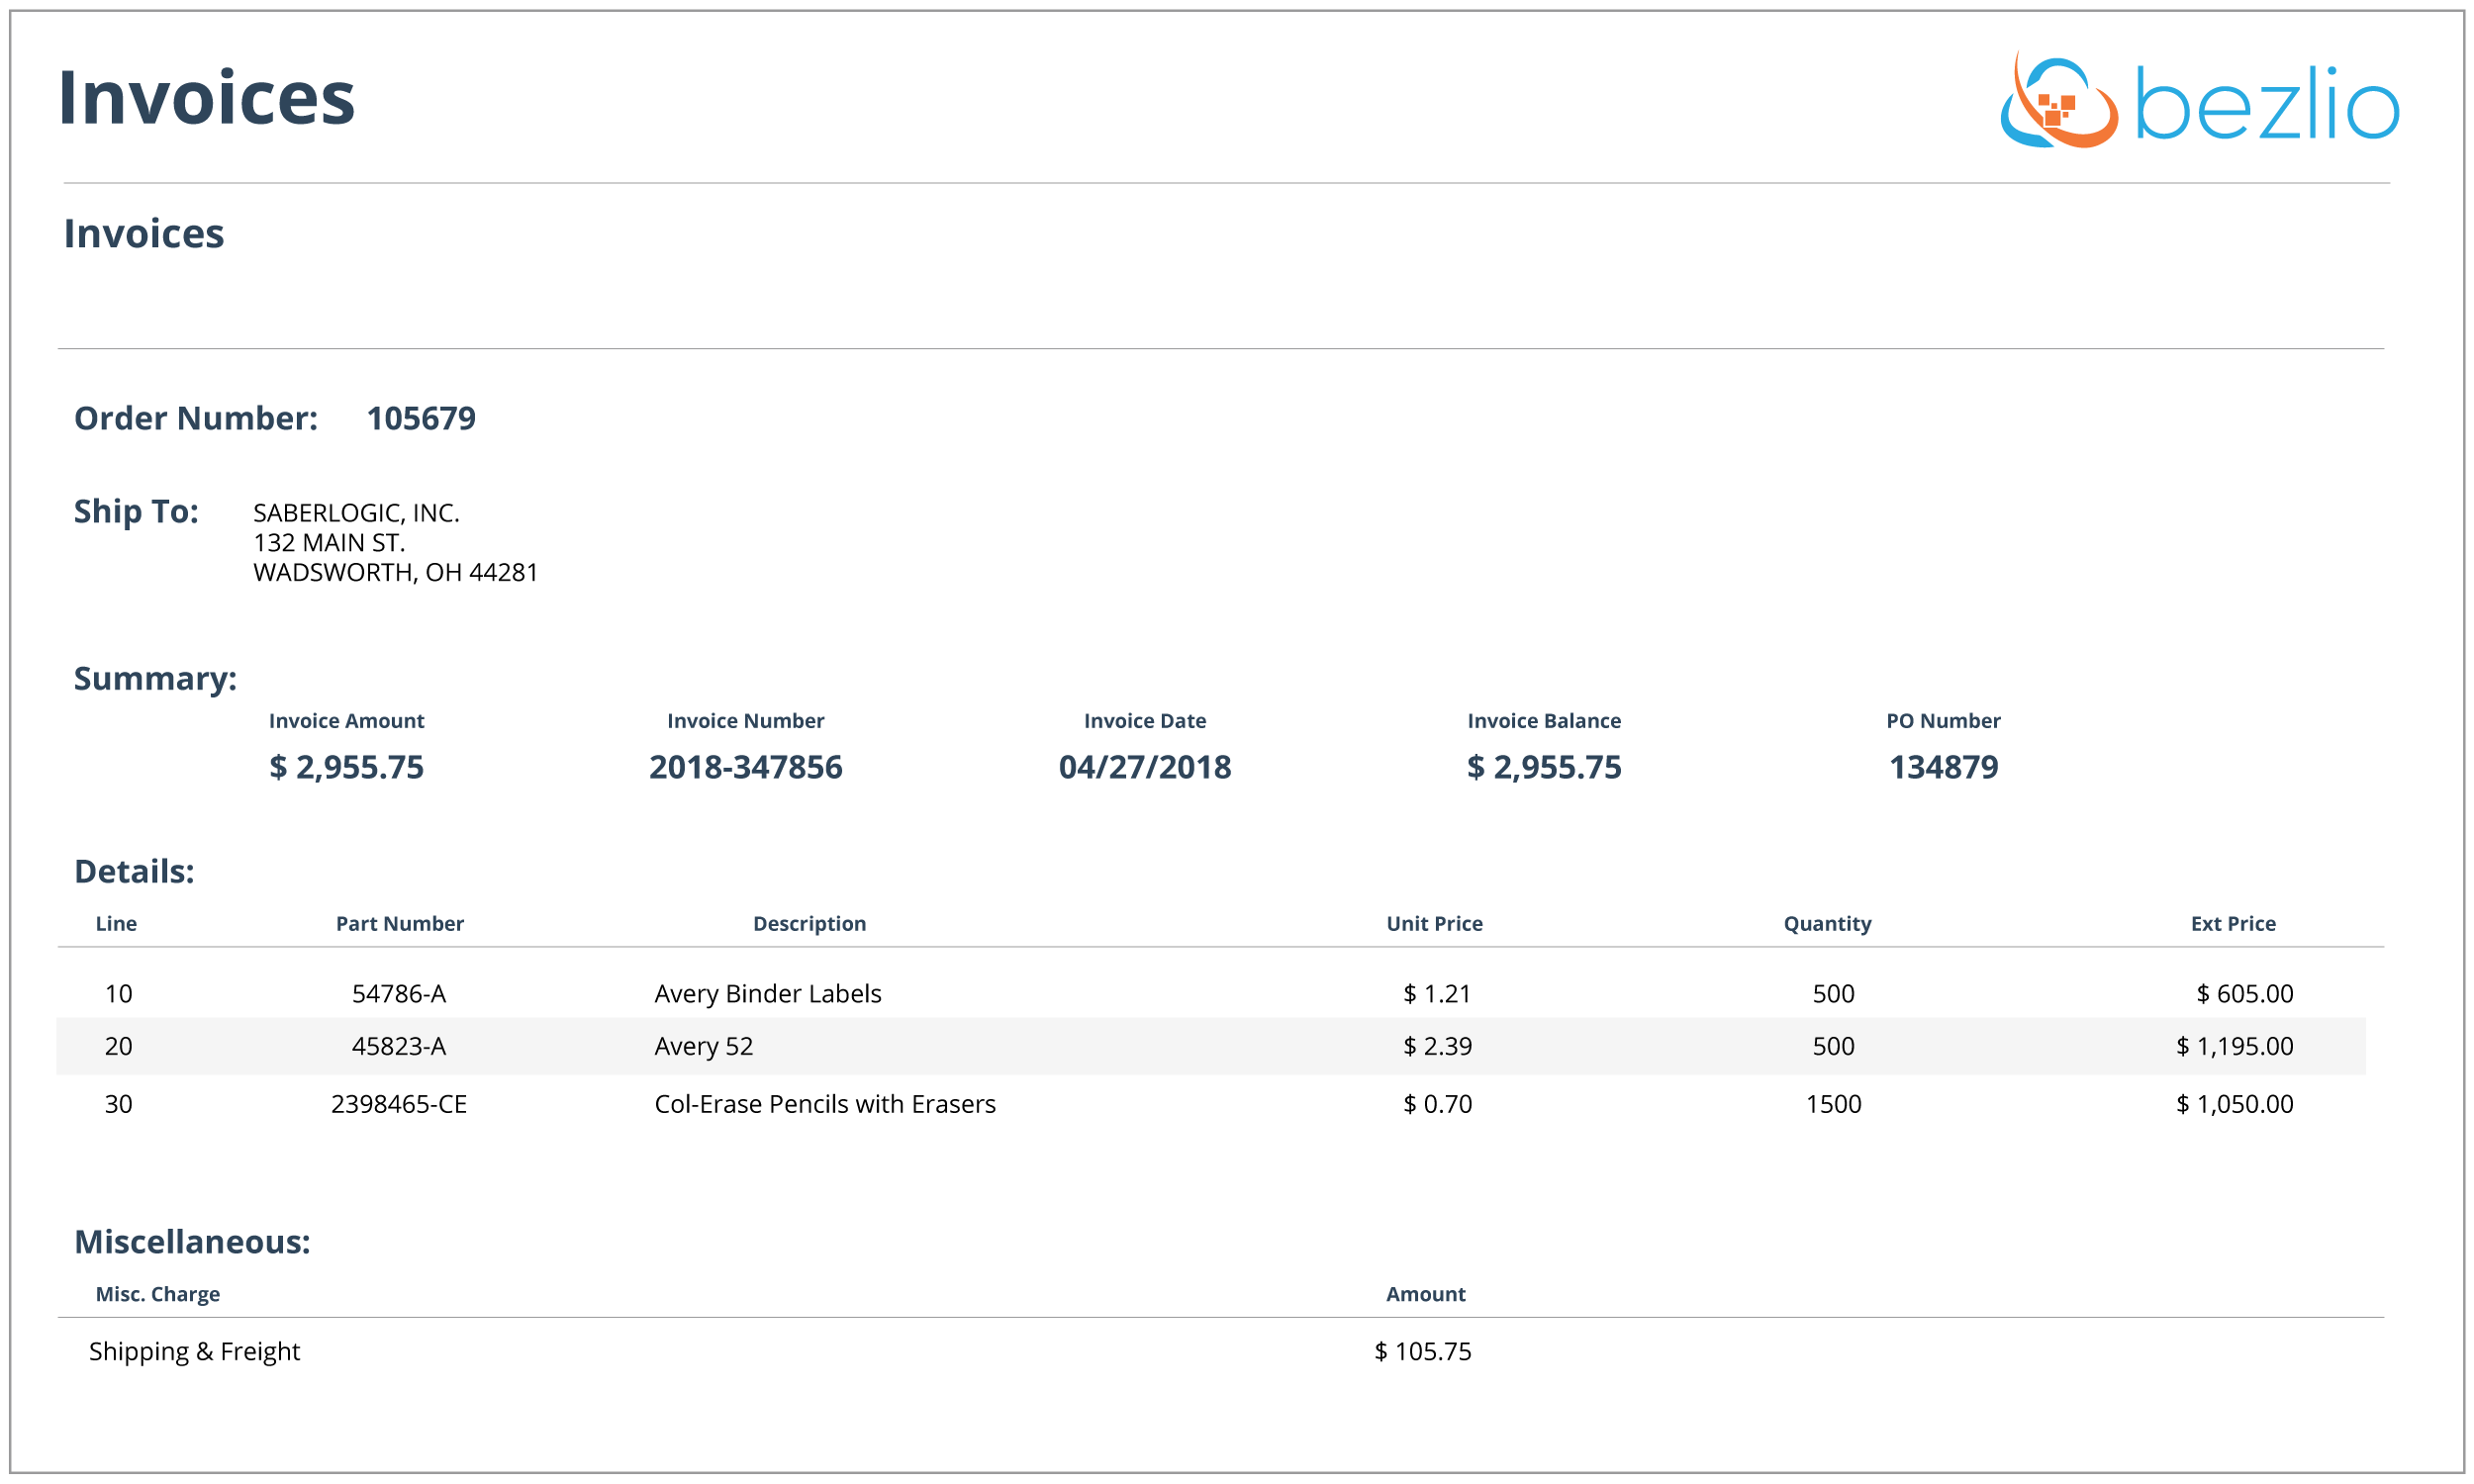 Screenshot of the Bezlio self-service customer portal screen for displaying invoices and invoice details from your on-premise ERP or accounting system.